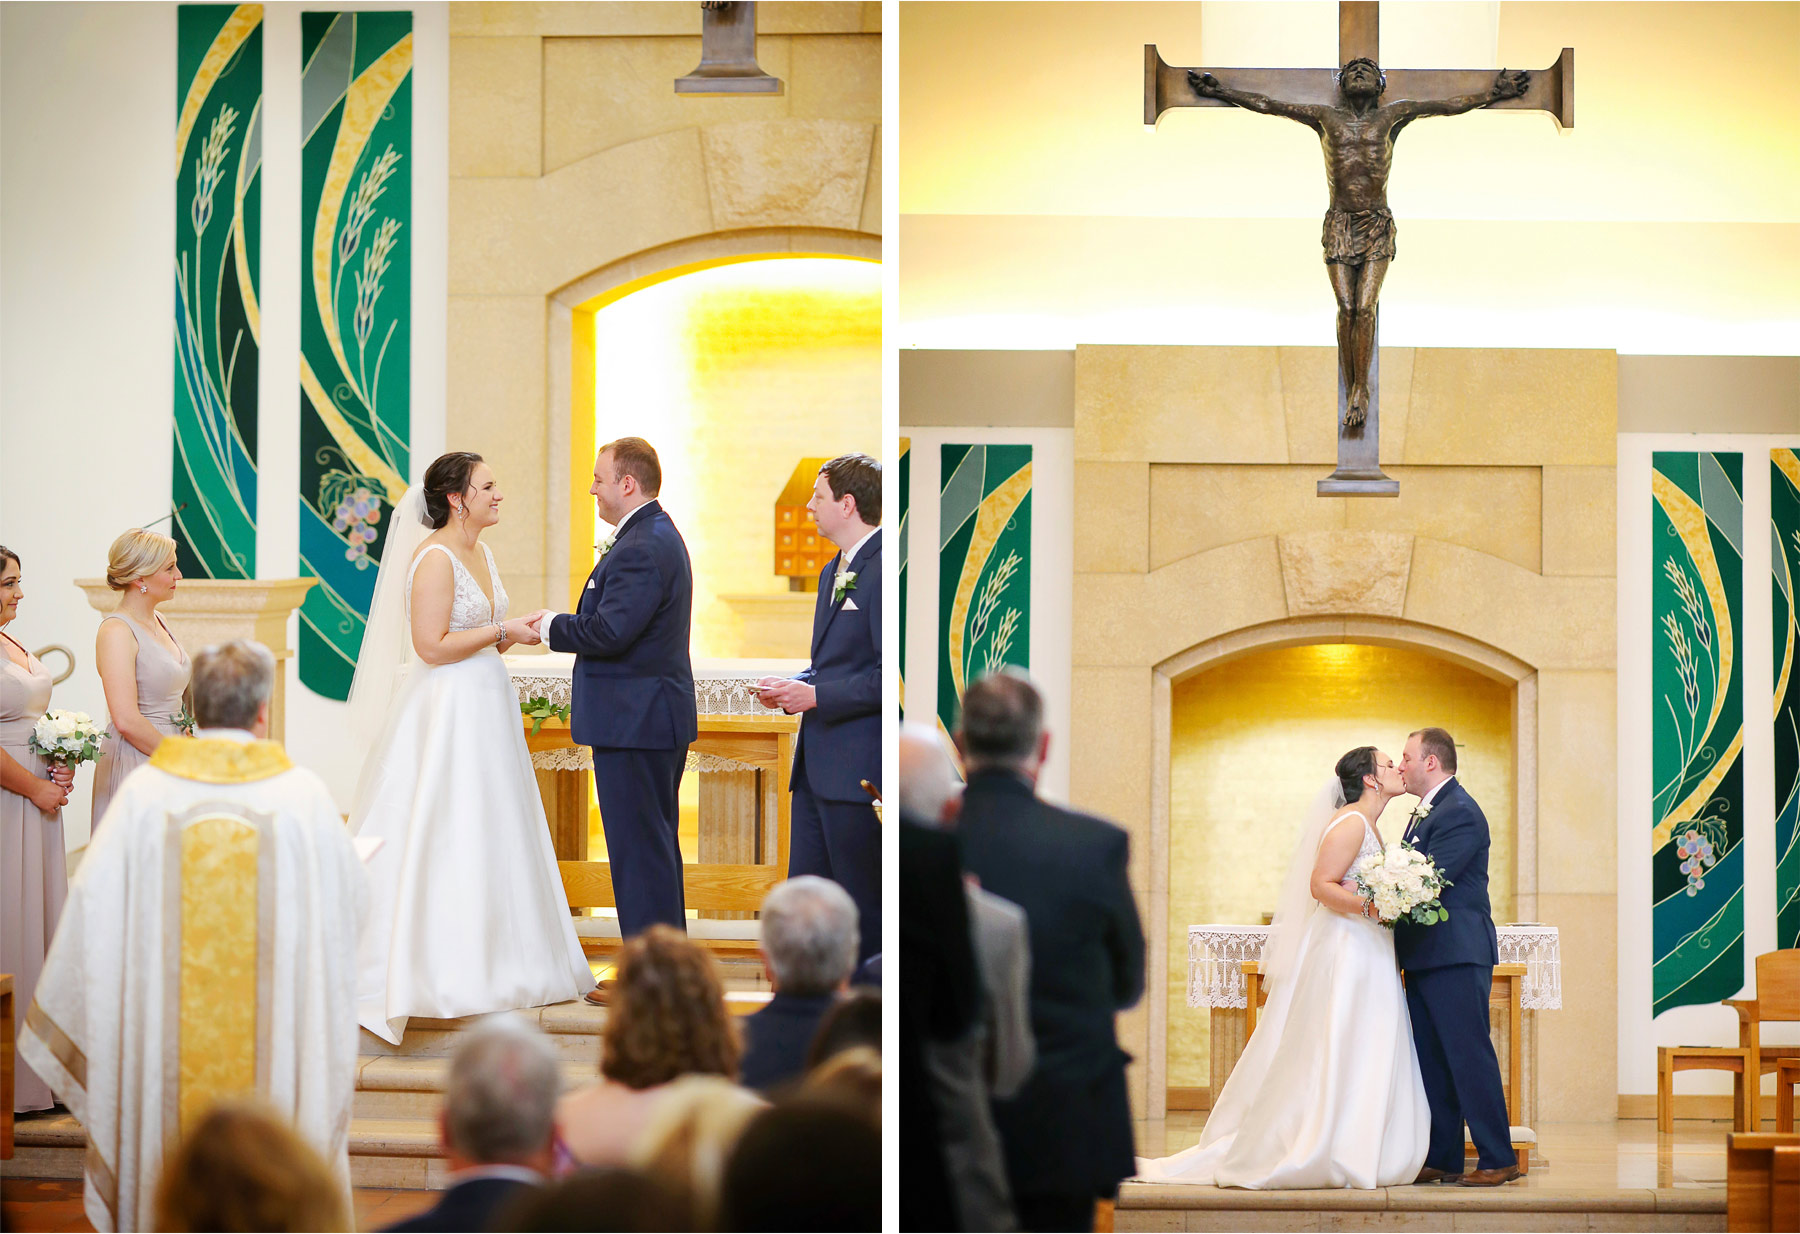 14-Vick-Photography-Wedding-Minneapolis-Minnesota-Our-Lady-of-Grace-Catholic-Church-Ceremony-Erin-and-David.jpg